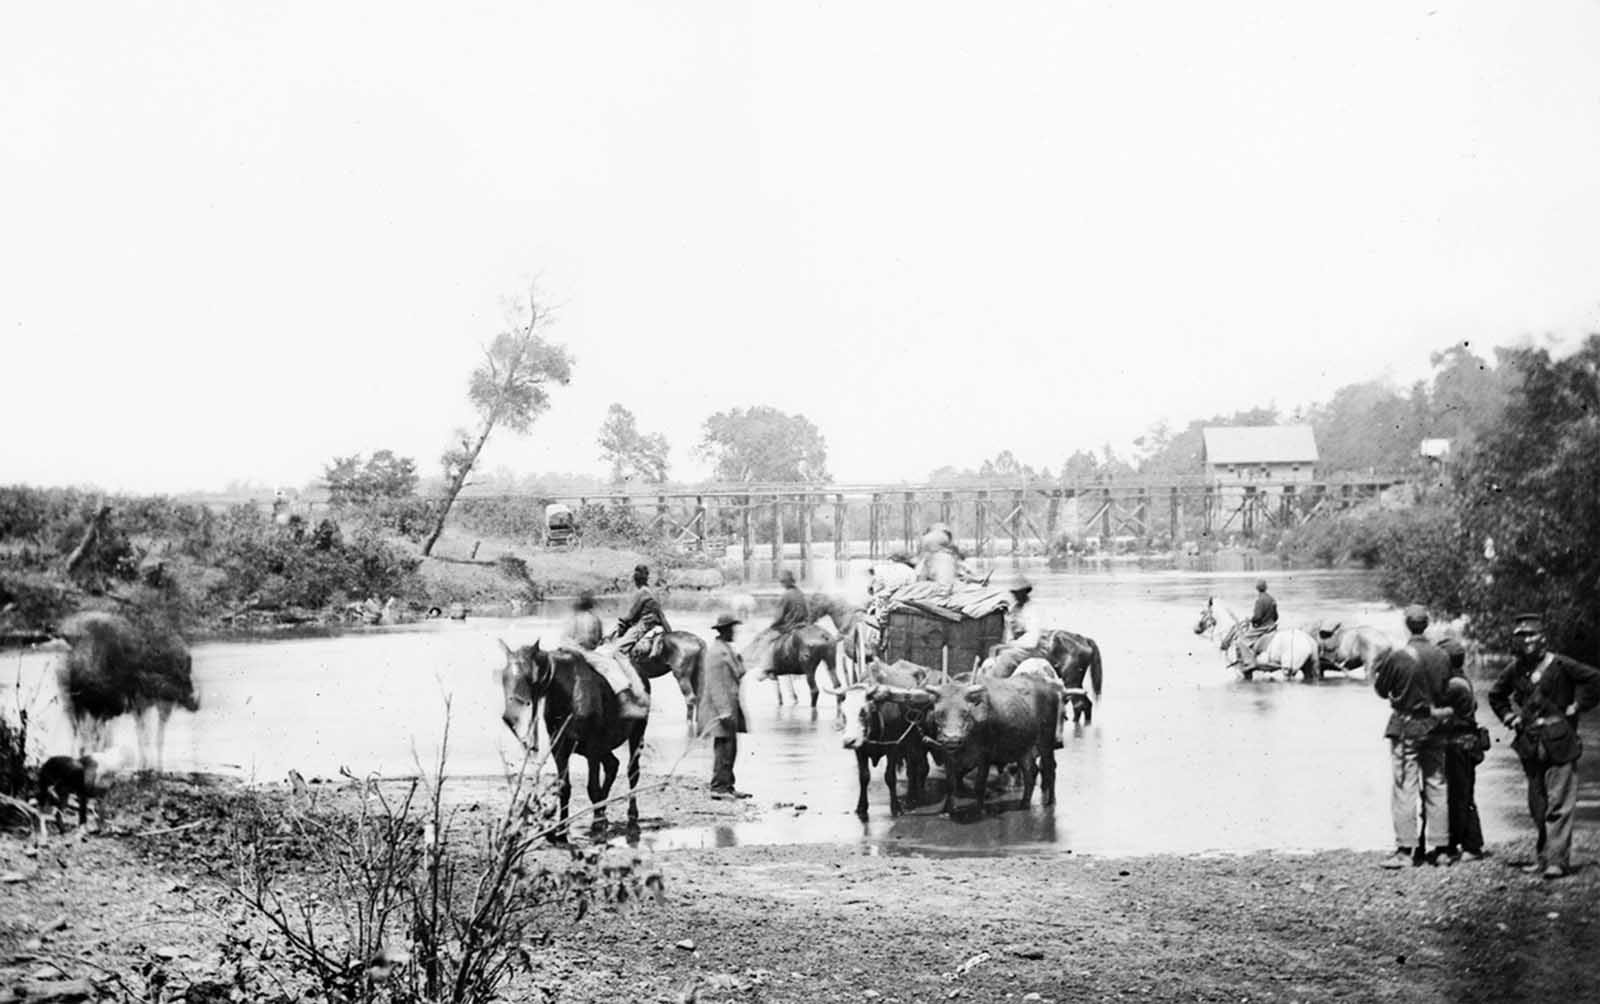 Fugitive African Americans fording the Rappahannock River, Virginia during Pope's retreat in August of 1862.